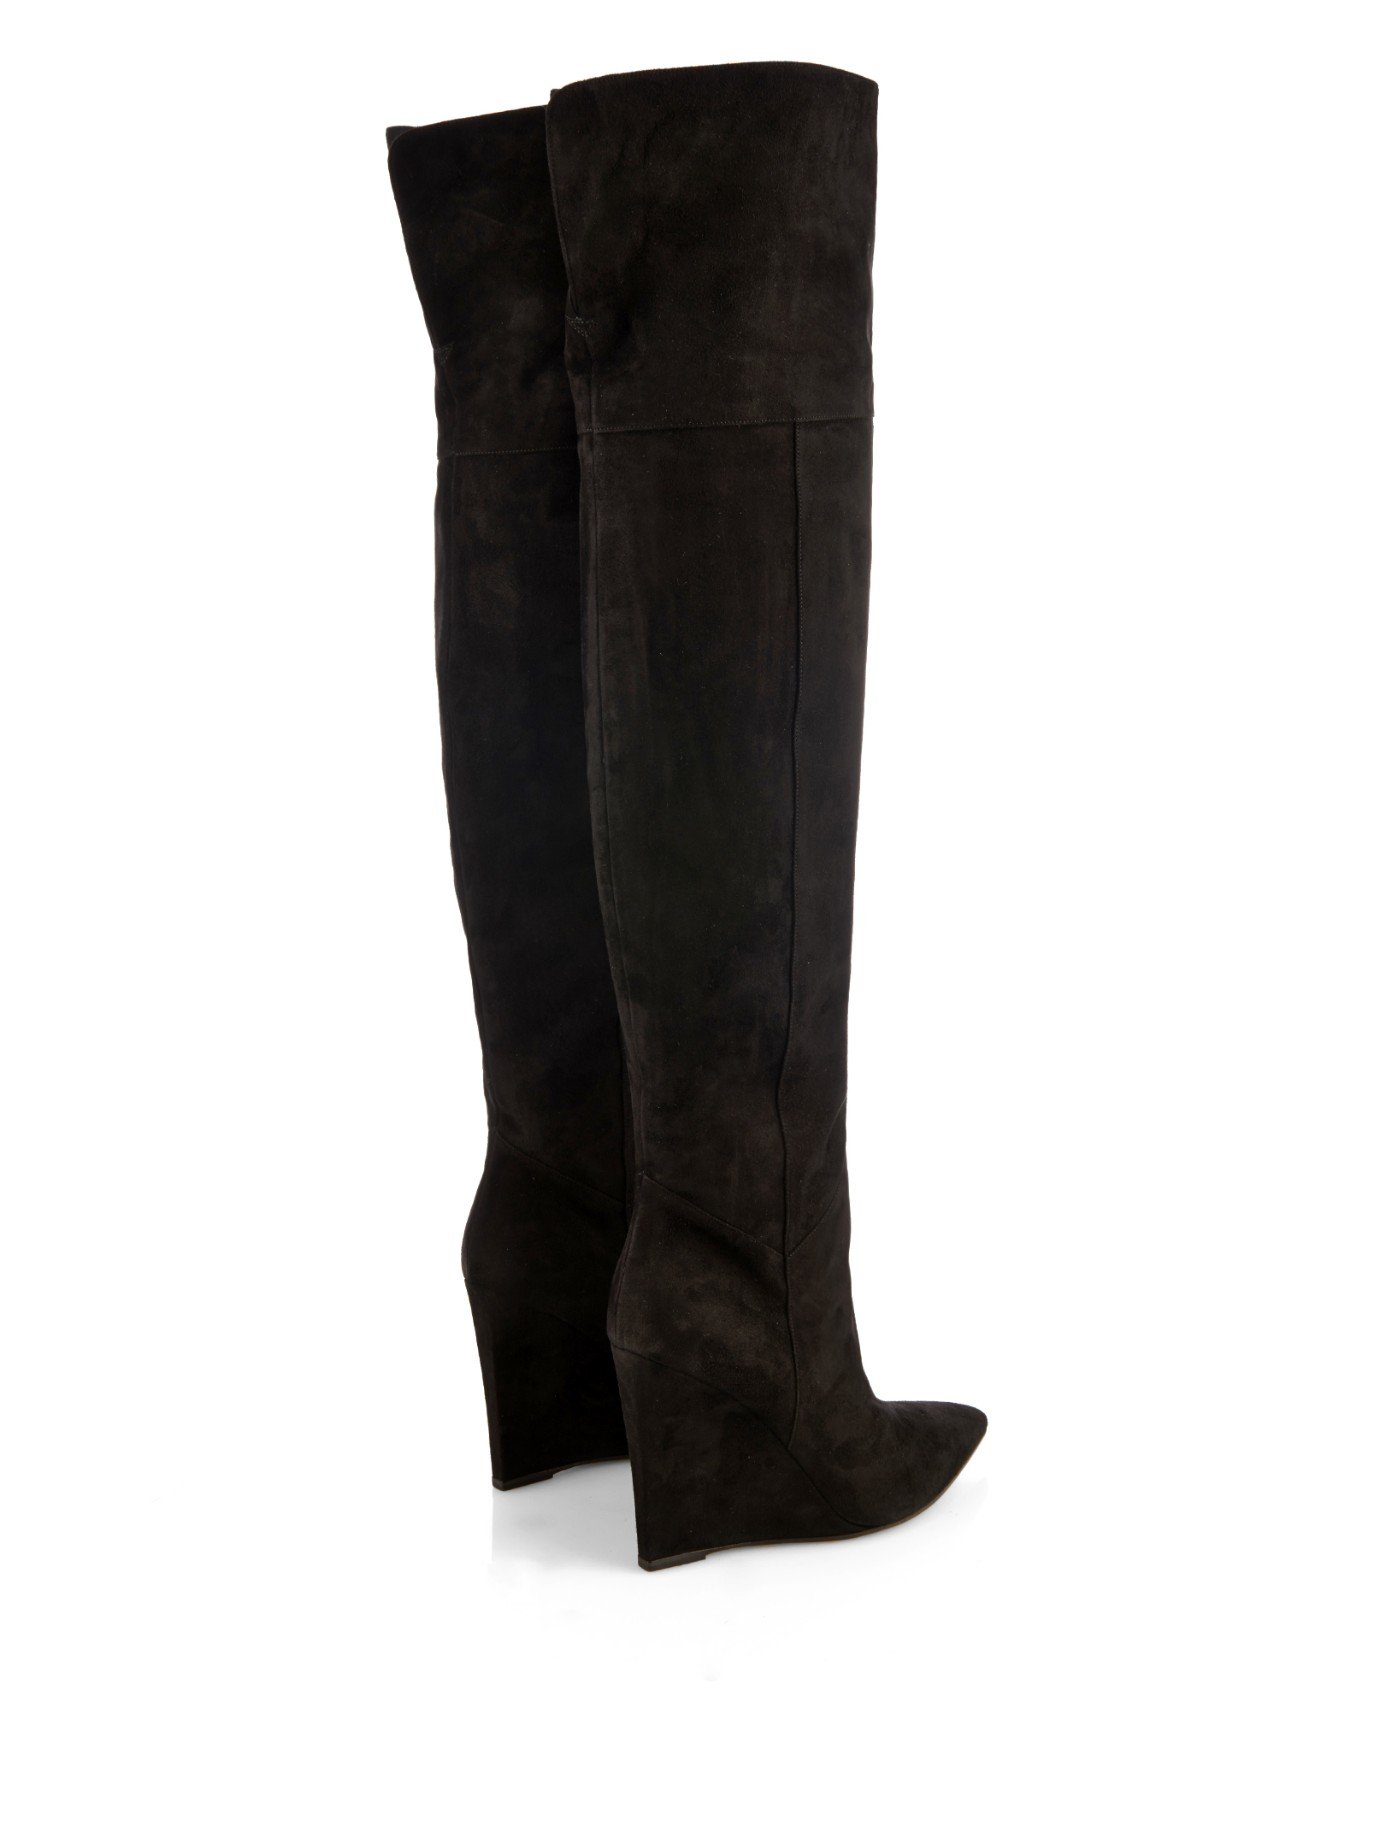 2ff26d7a1a8 Saint Laurent Over-the-knee Suede Wedge Boots in Black - Lyst